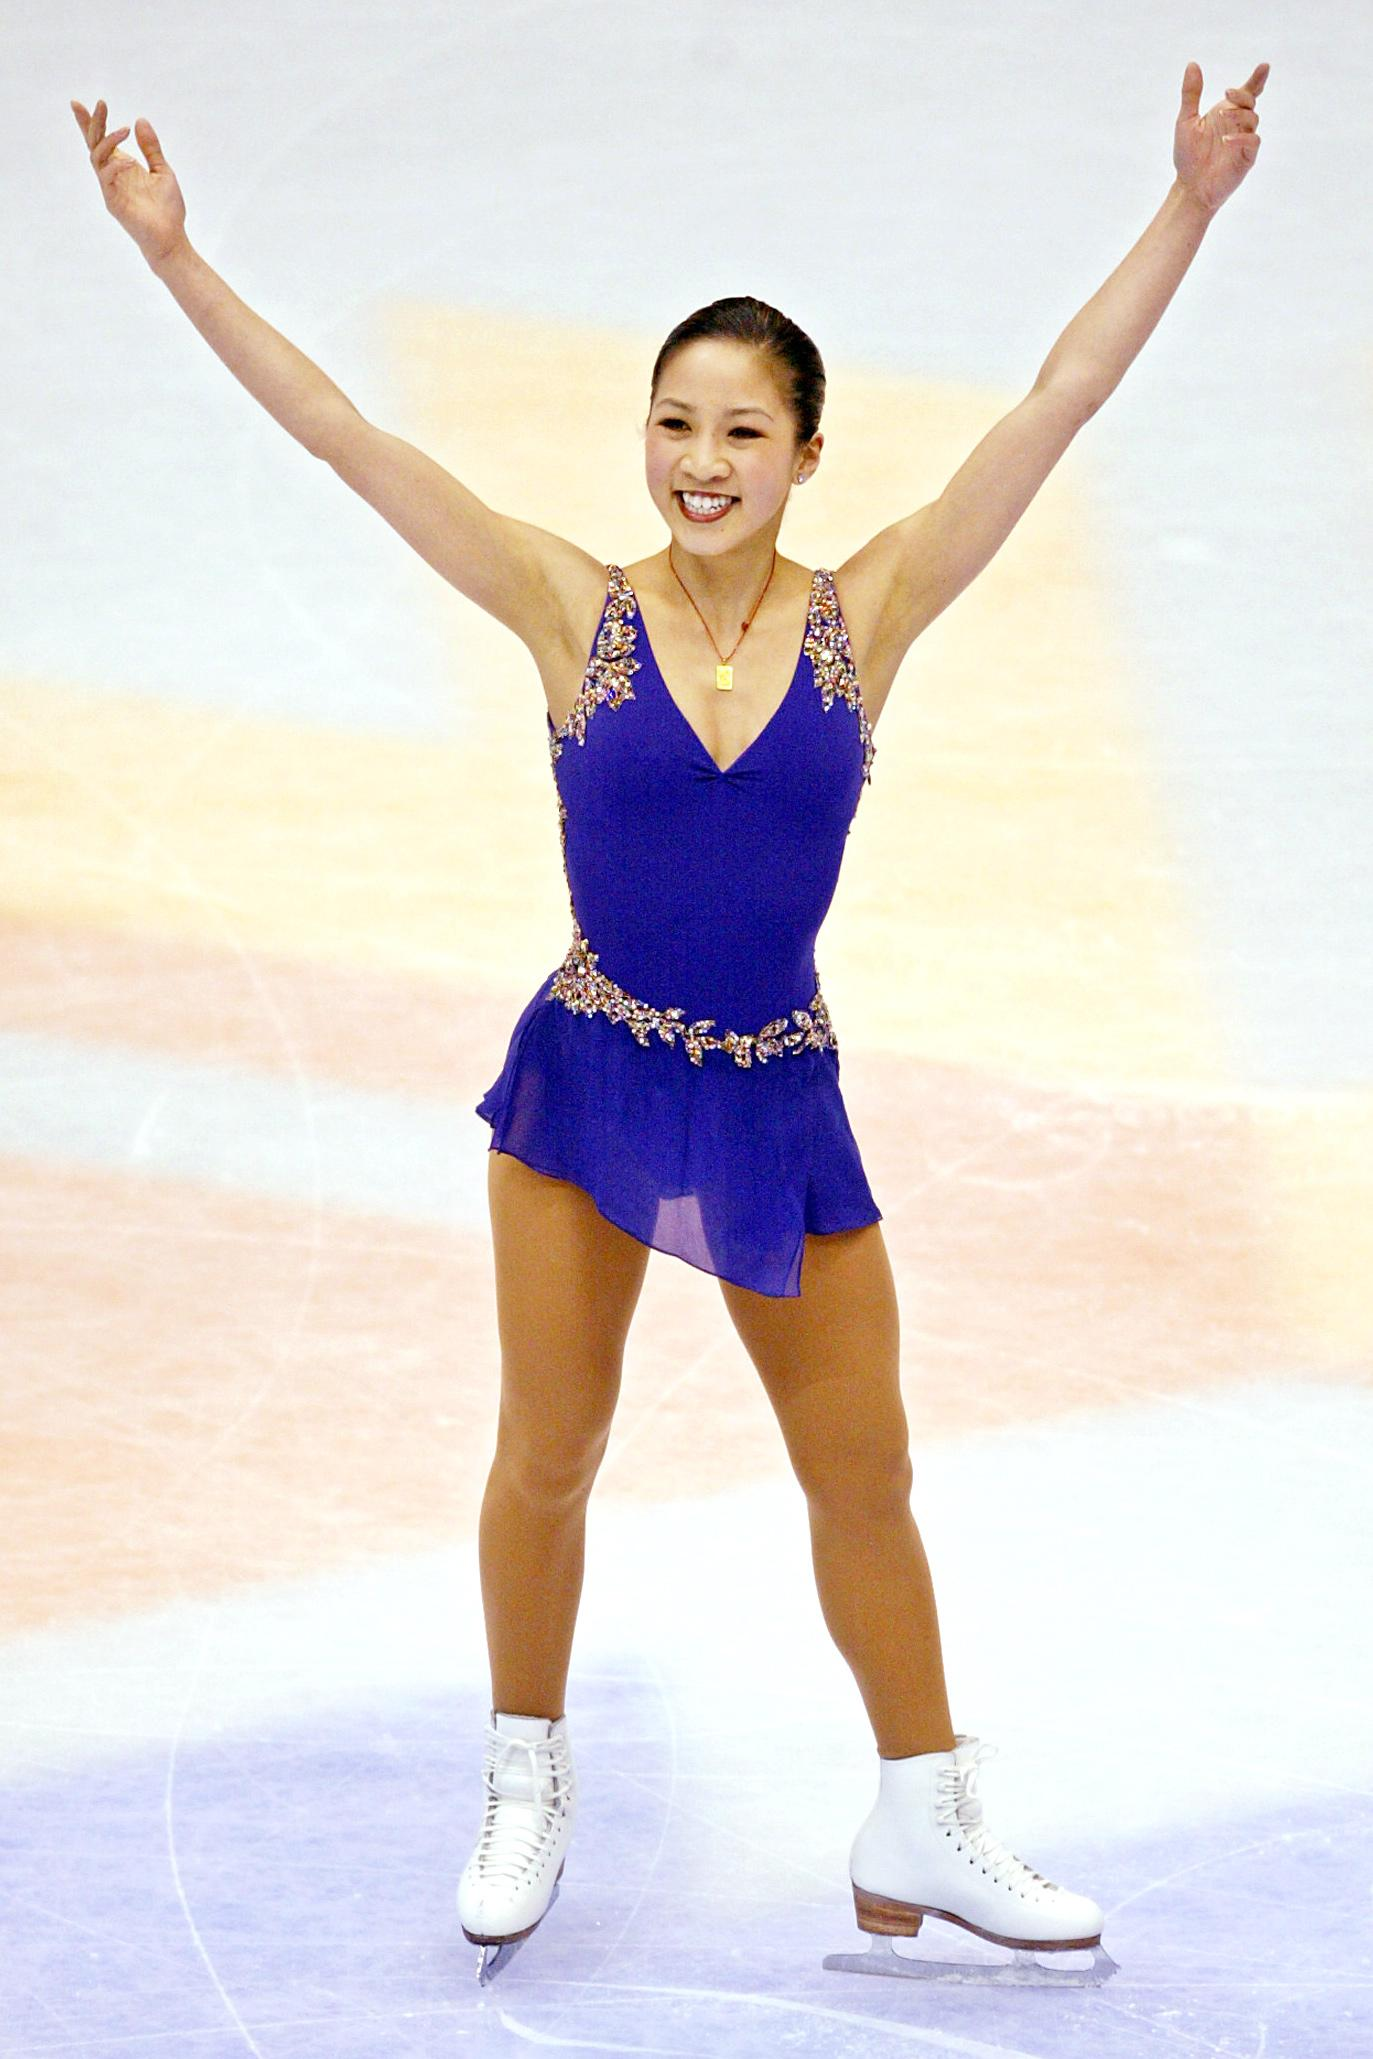 Michelle Kwan (1998 Olympic Silver Medalist, 2002 Olympic Bronze Medalist)A Comprehensive List of the Best Figure Skaters of All Time